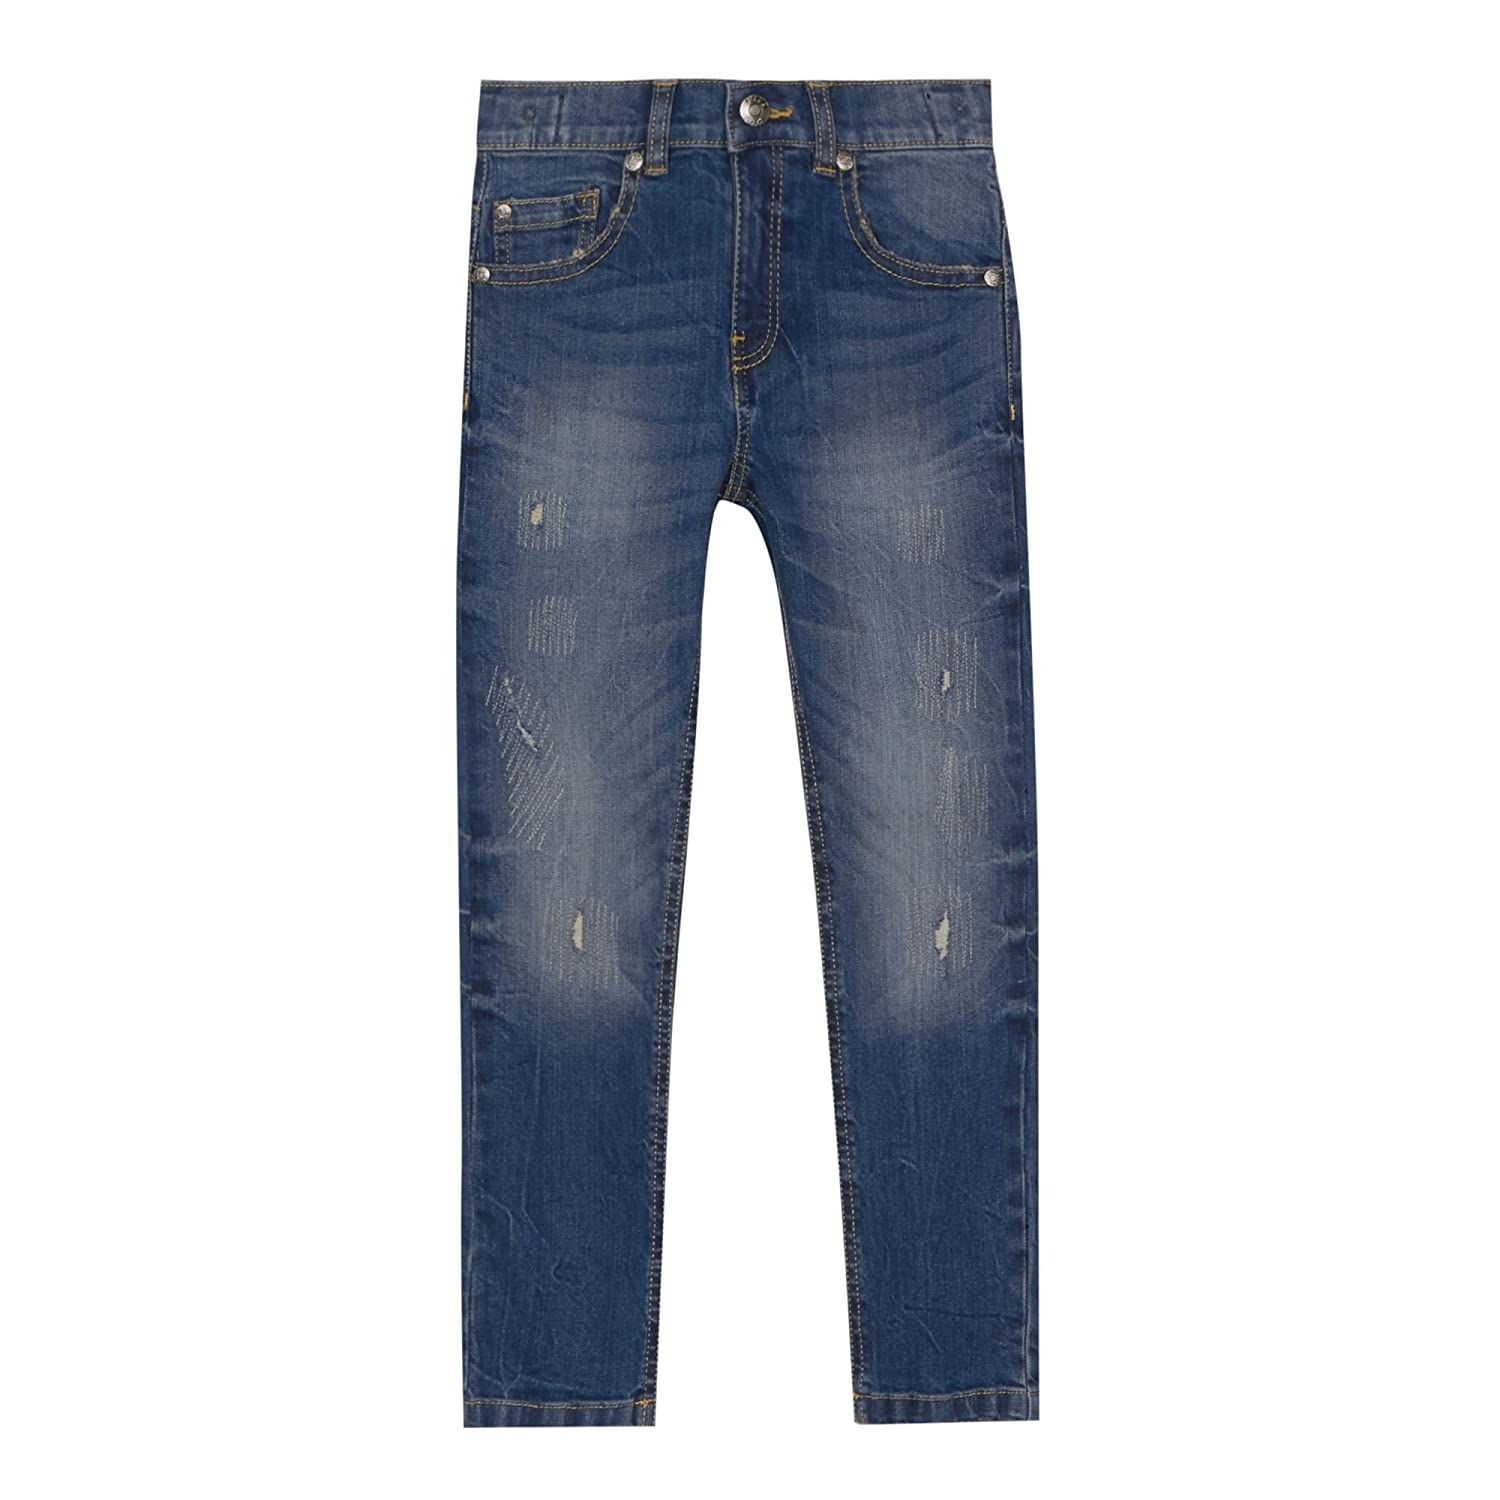 bluezoo Kids 'Boys' Blue Super Skinny Jeans